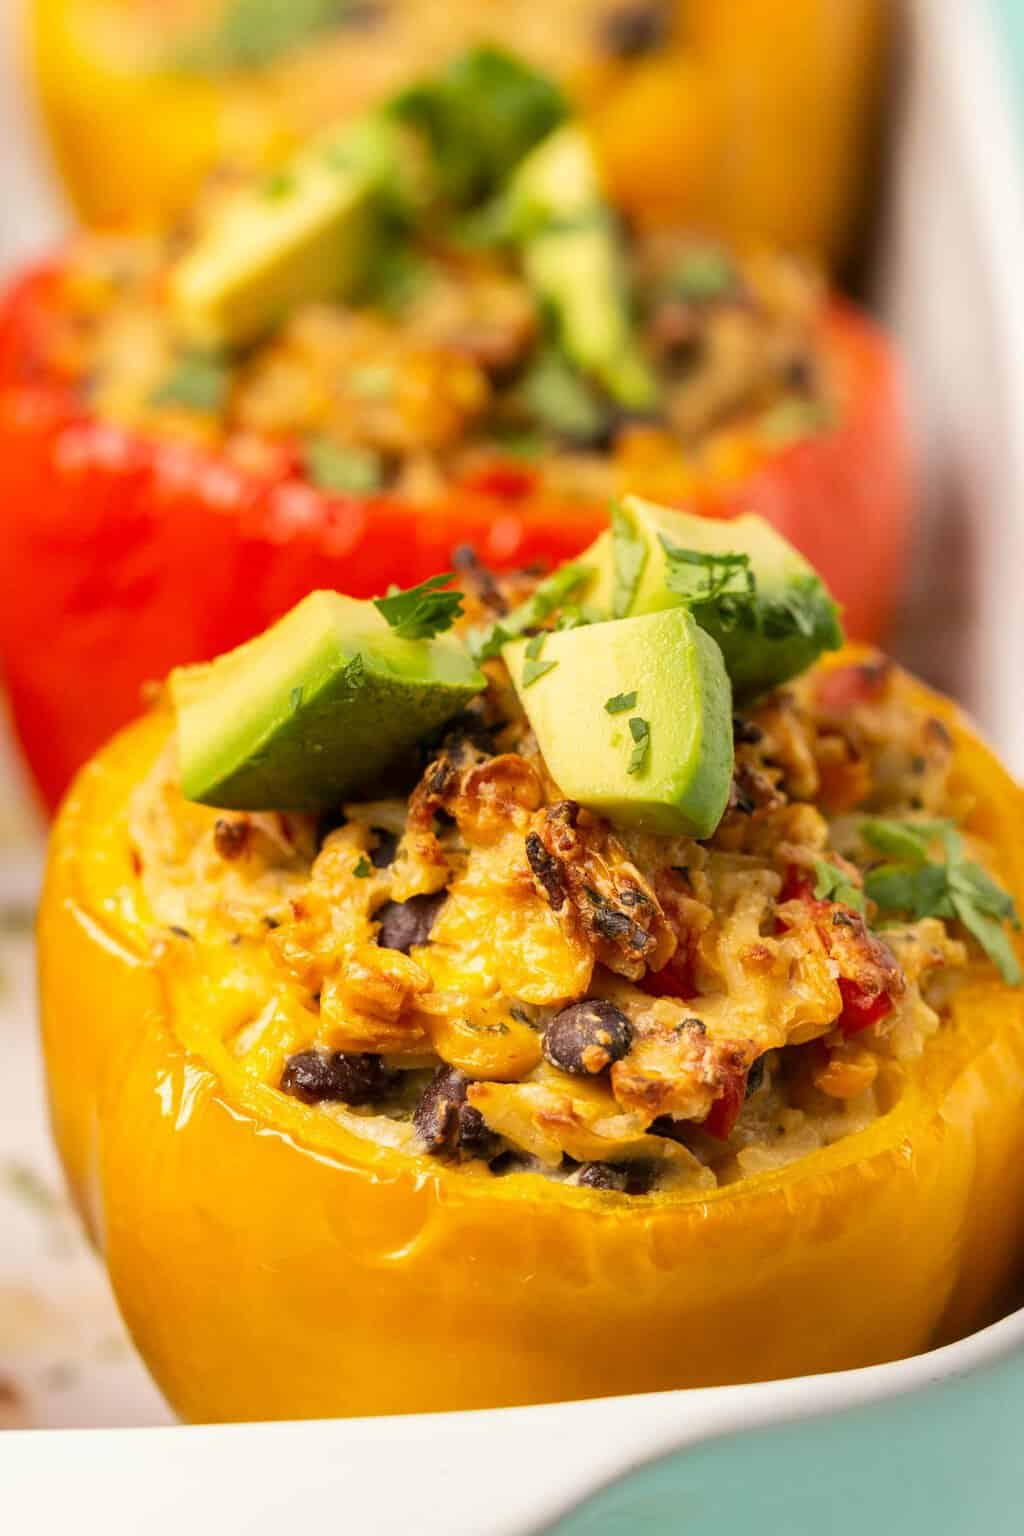 Vegan stuffed peppers topped with chopped avocado and cilantro.